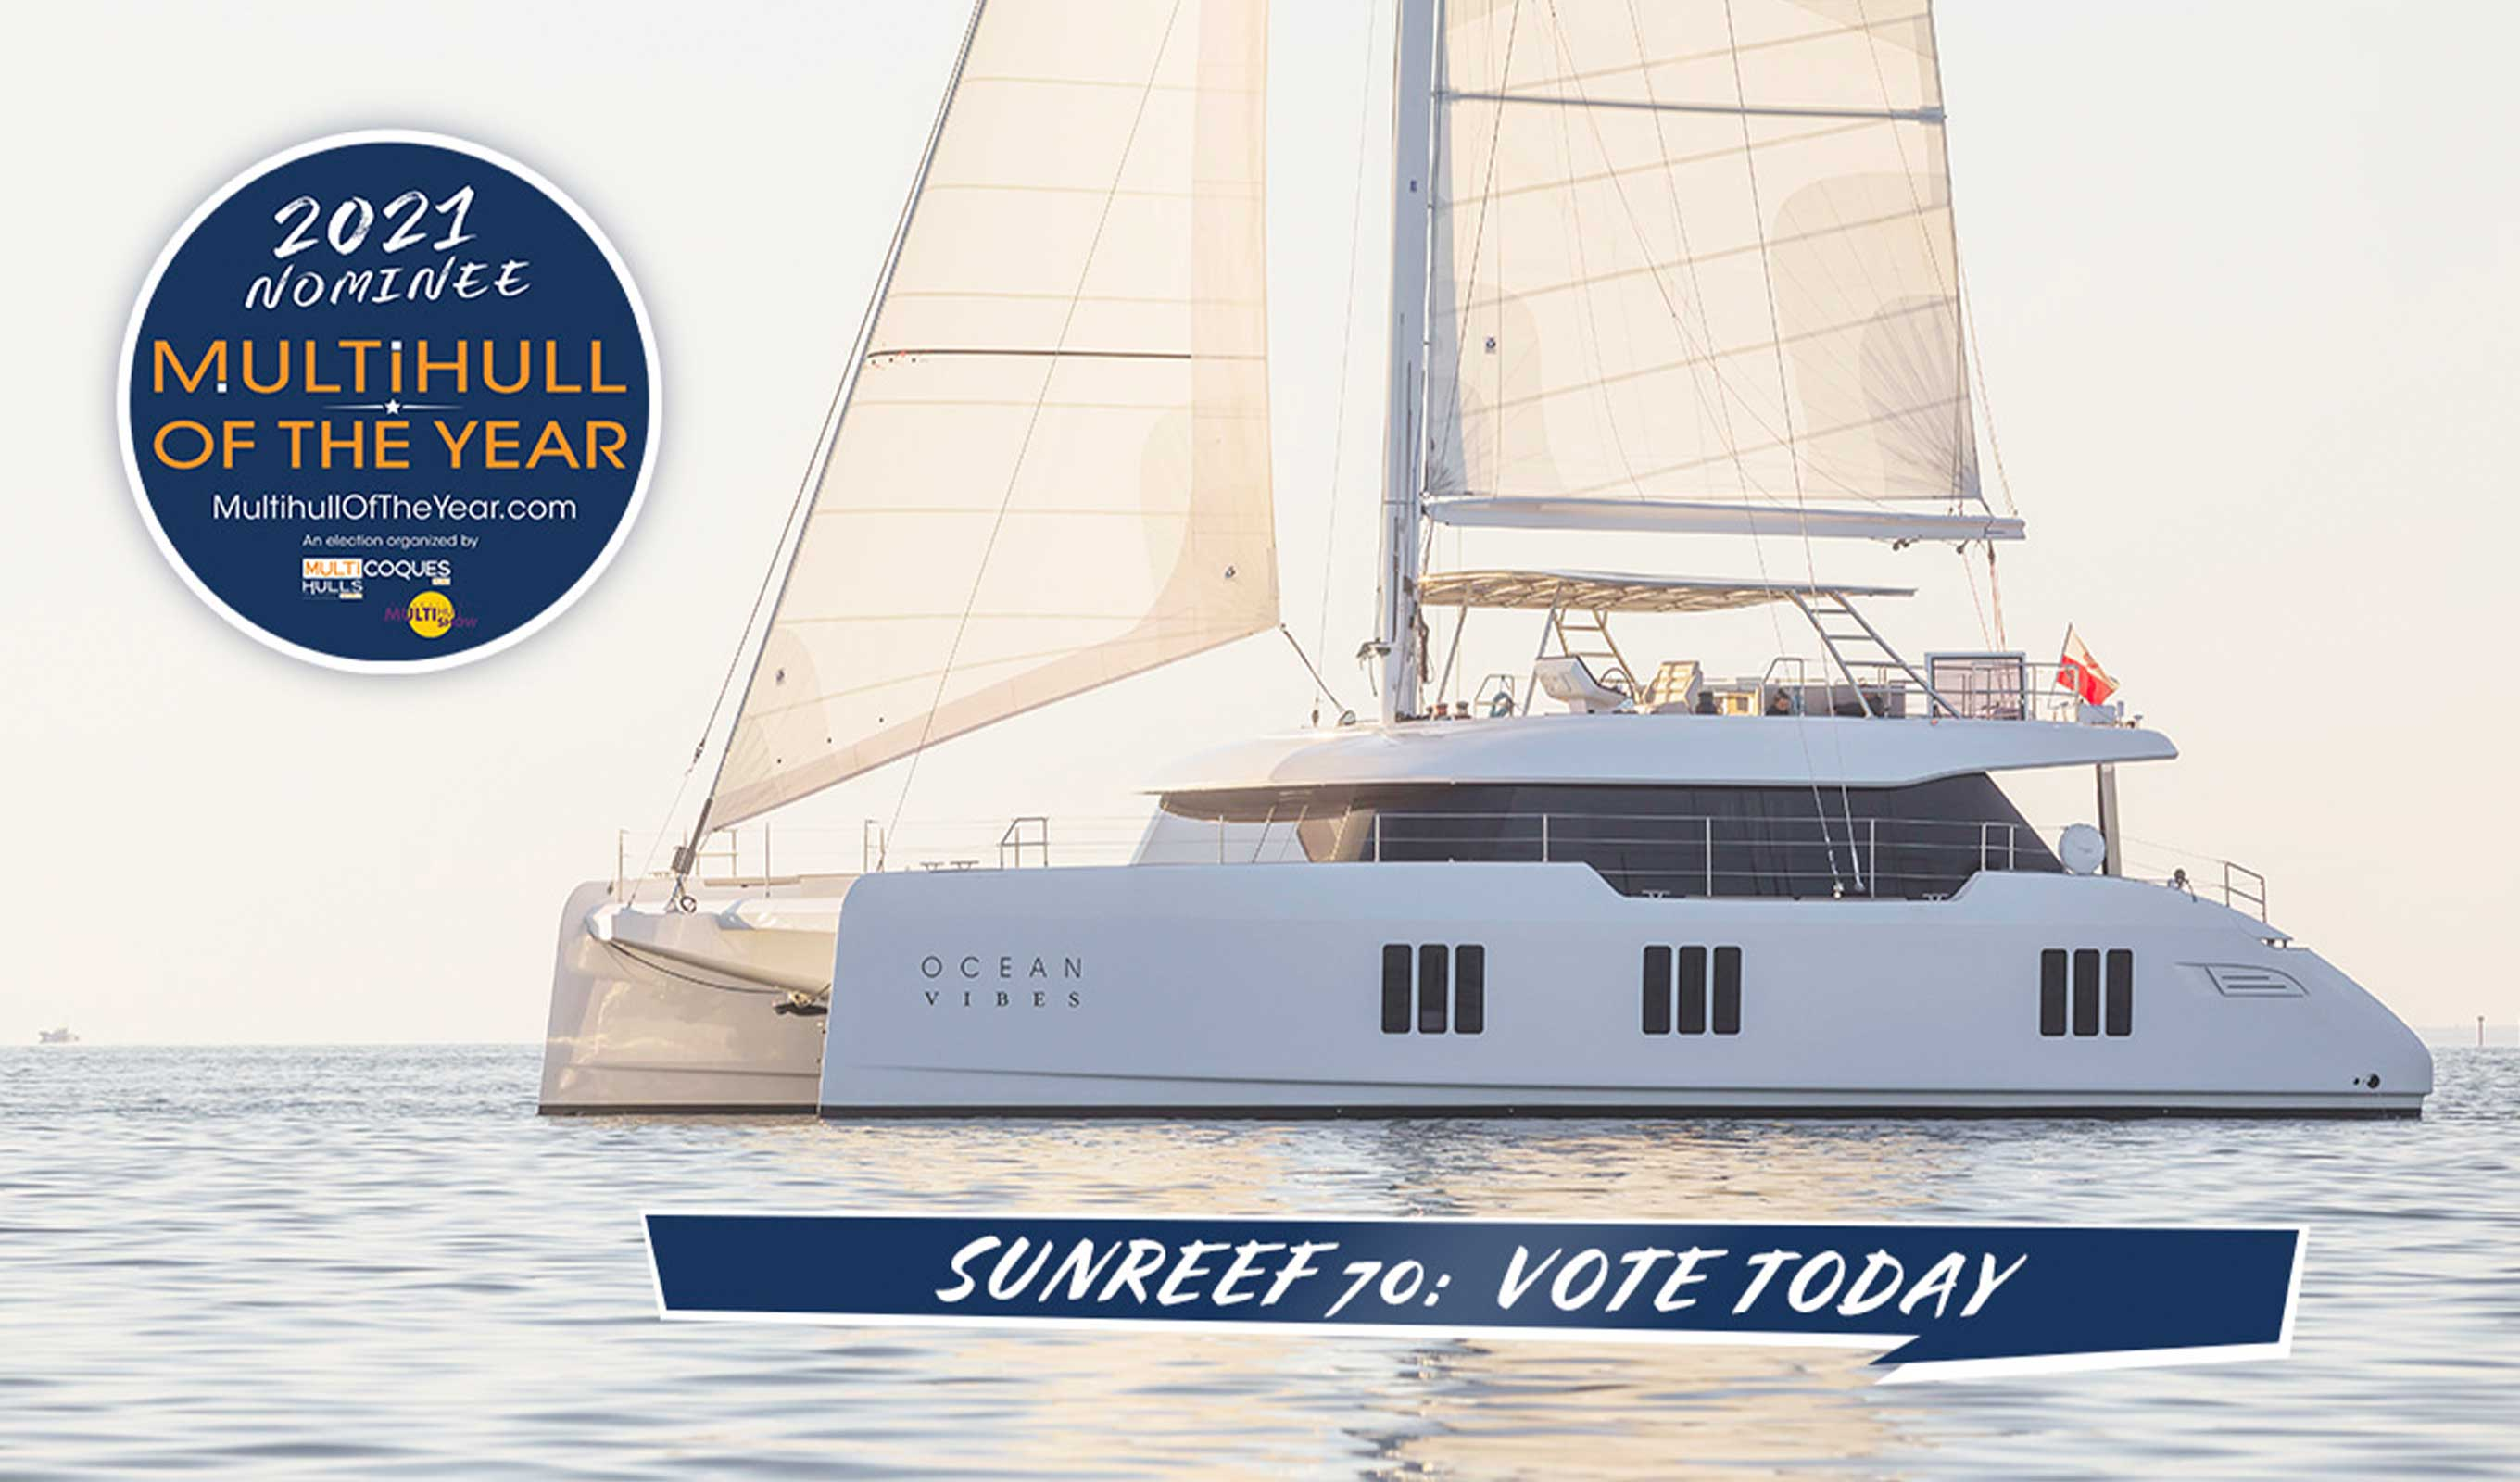 Sunreef 70 competes for Multihull of the Year